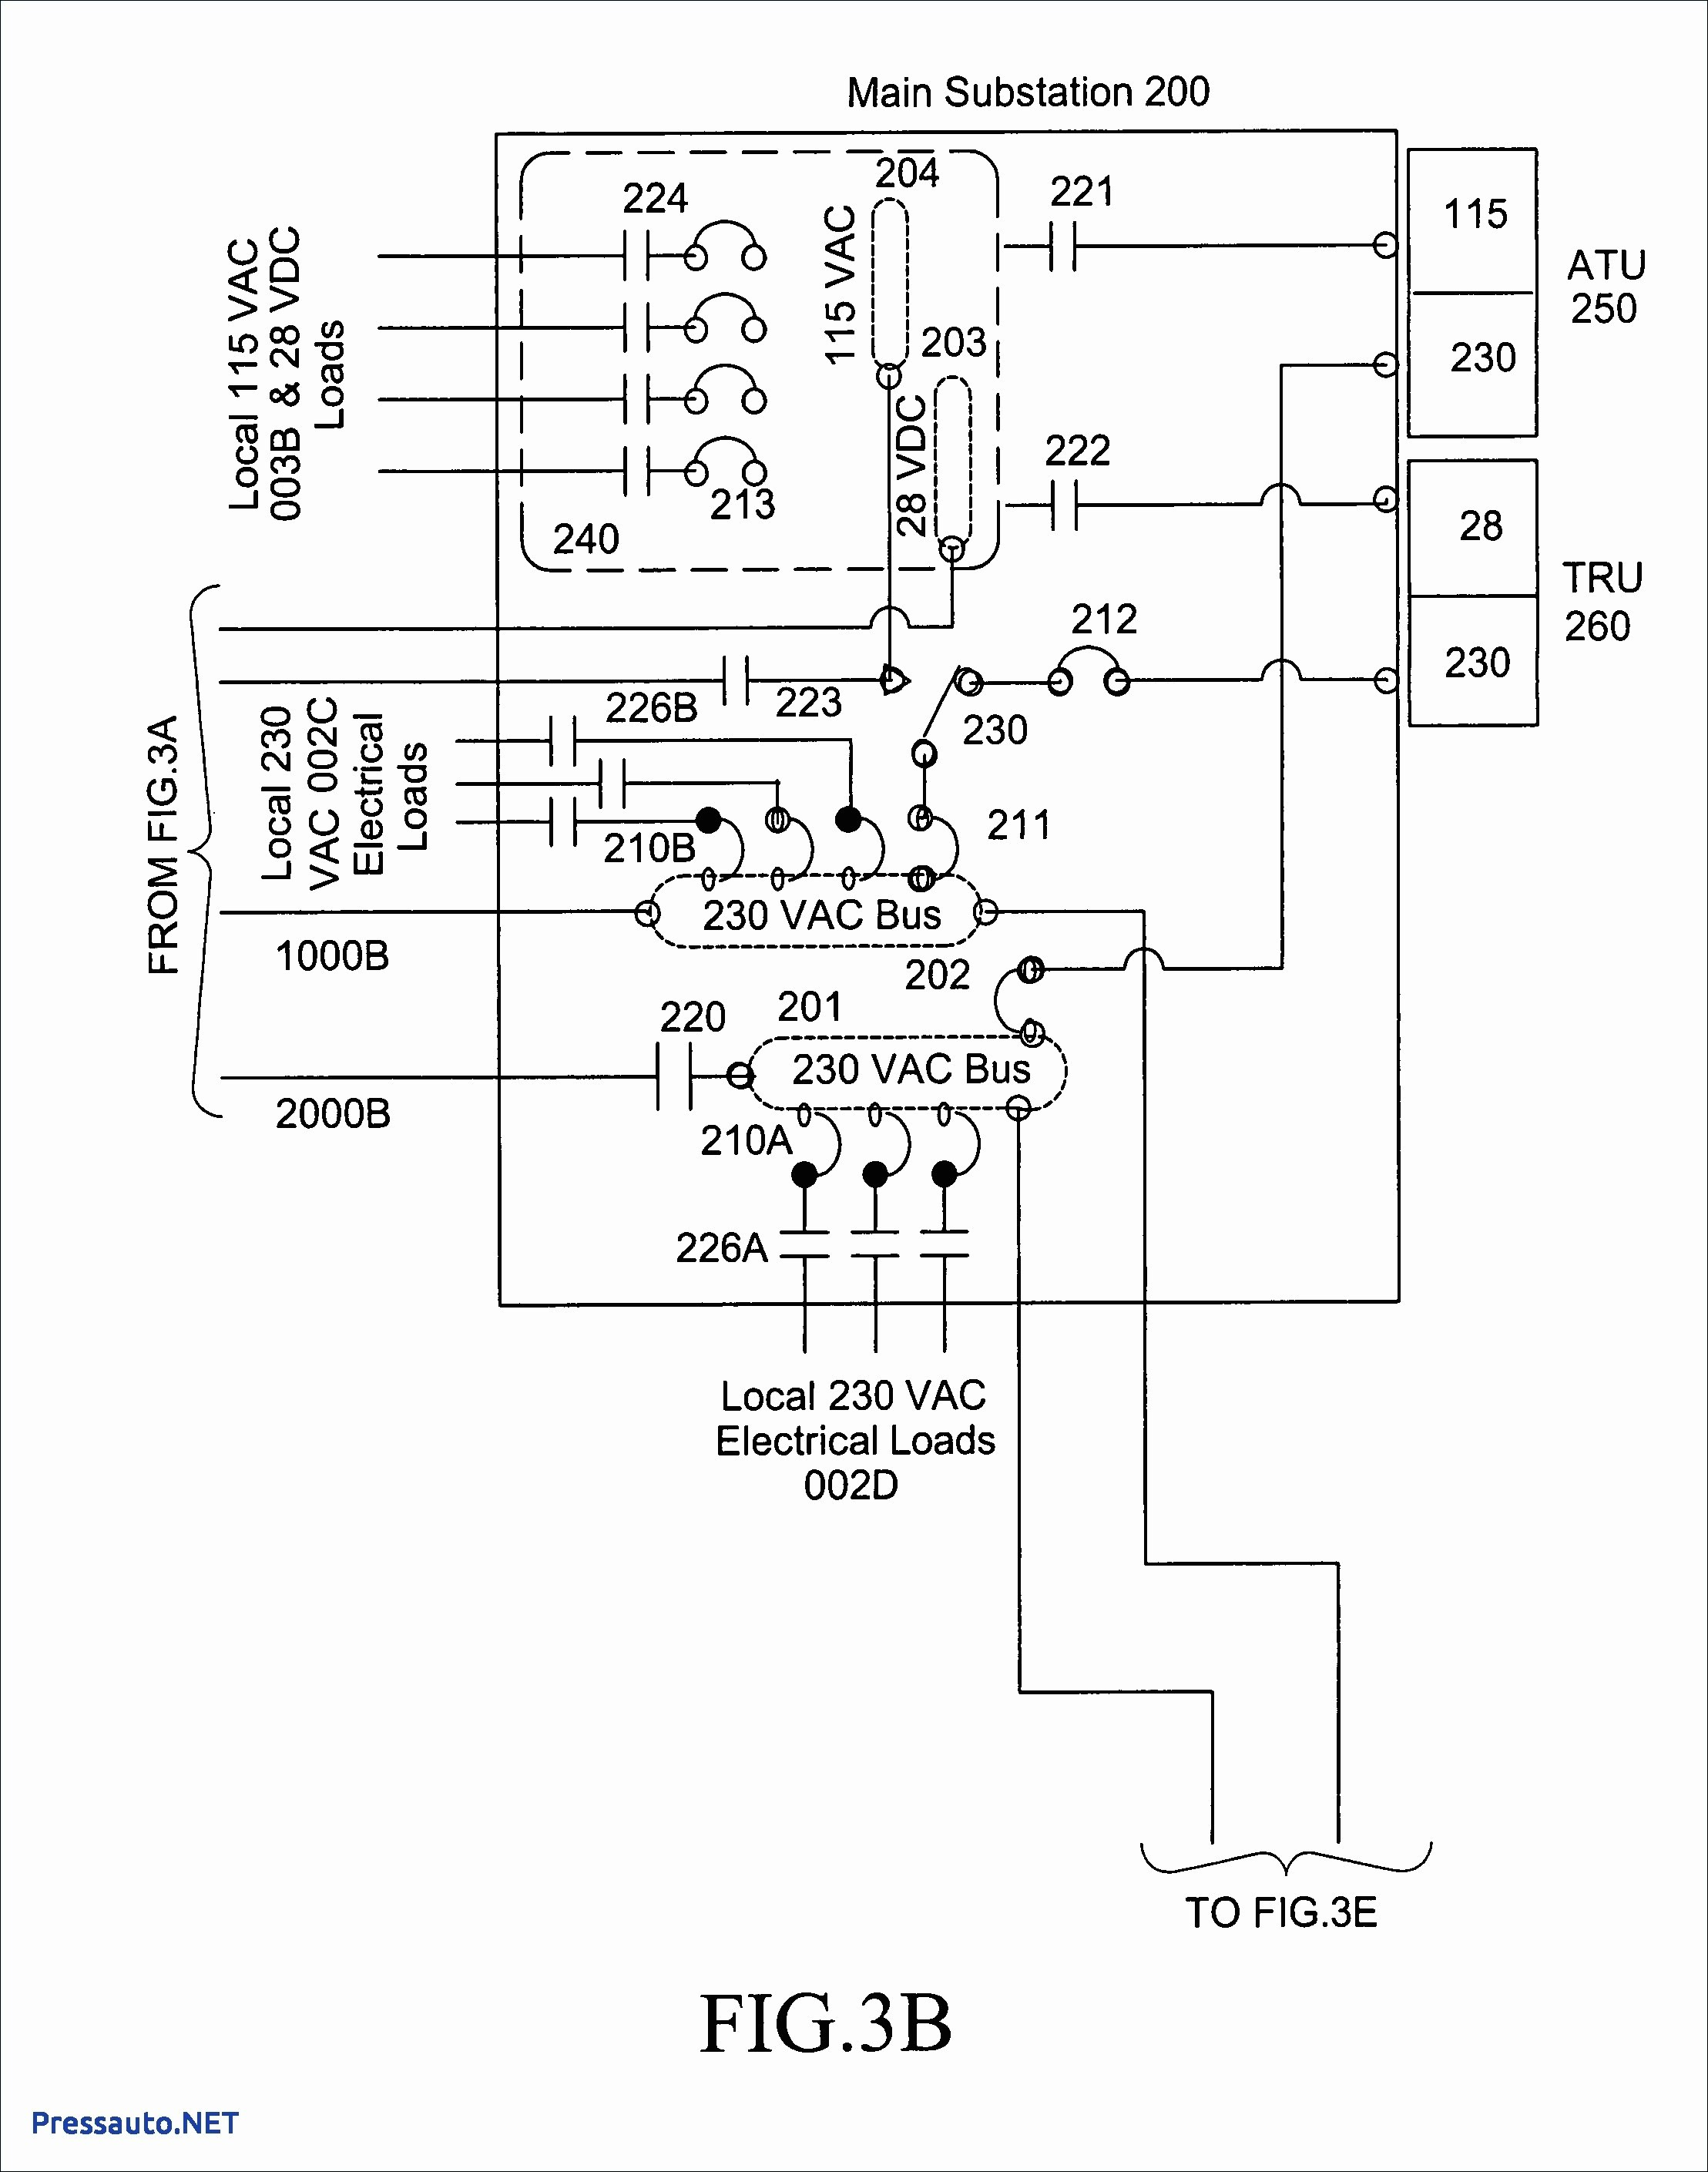 Honeywell Chronotherm Iii Wiring Diagram | Wiring Diagram - Honeywell Chronotherm Iii Wiring Diagram